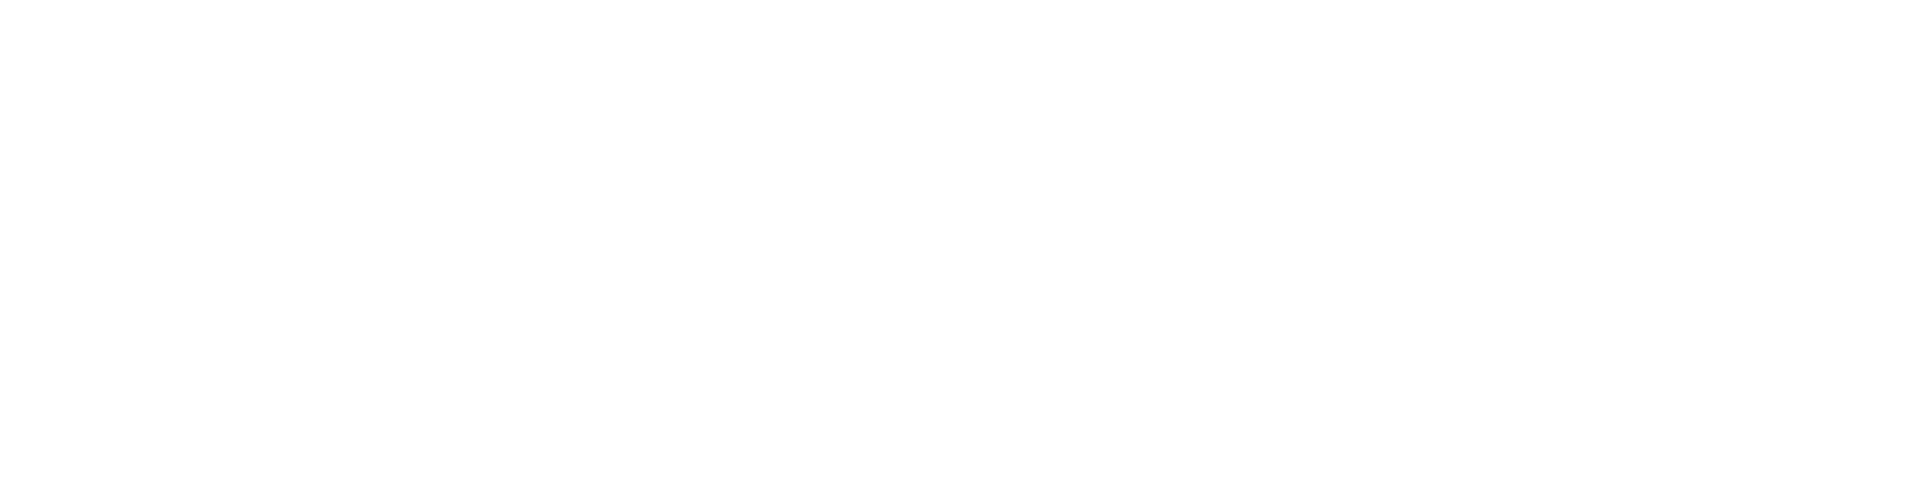 Dhydra Technologies